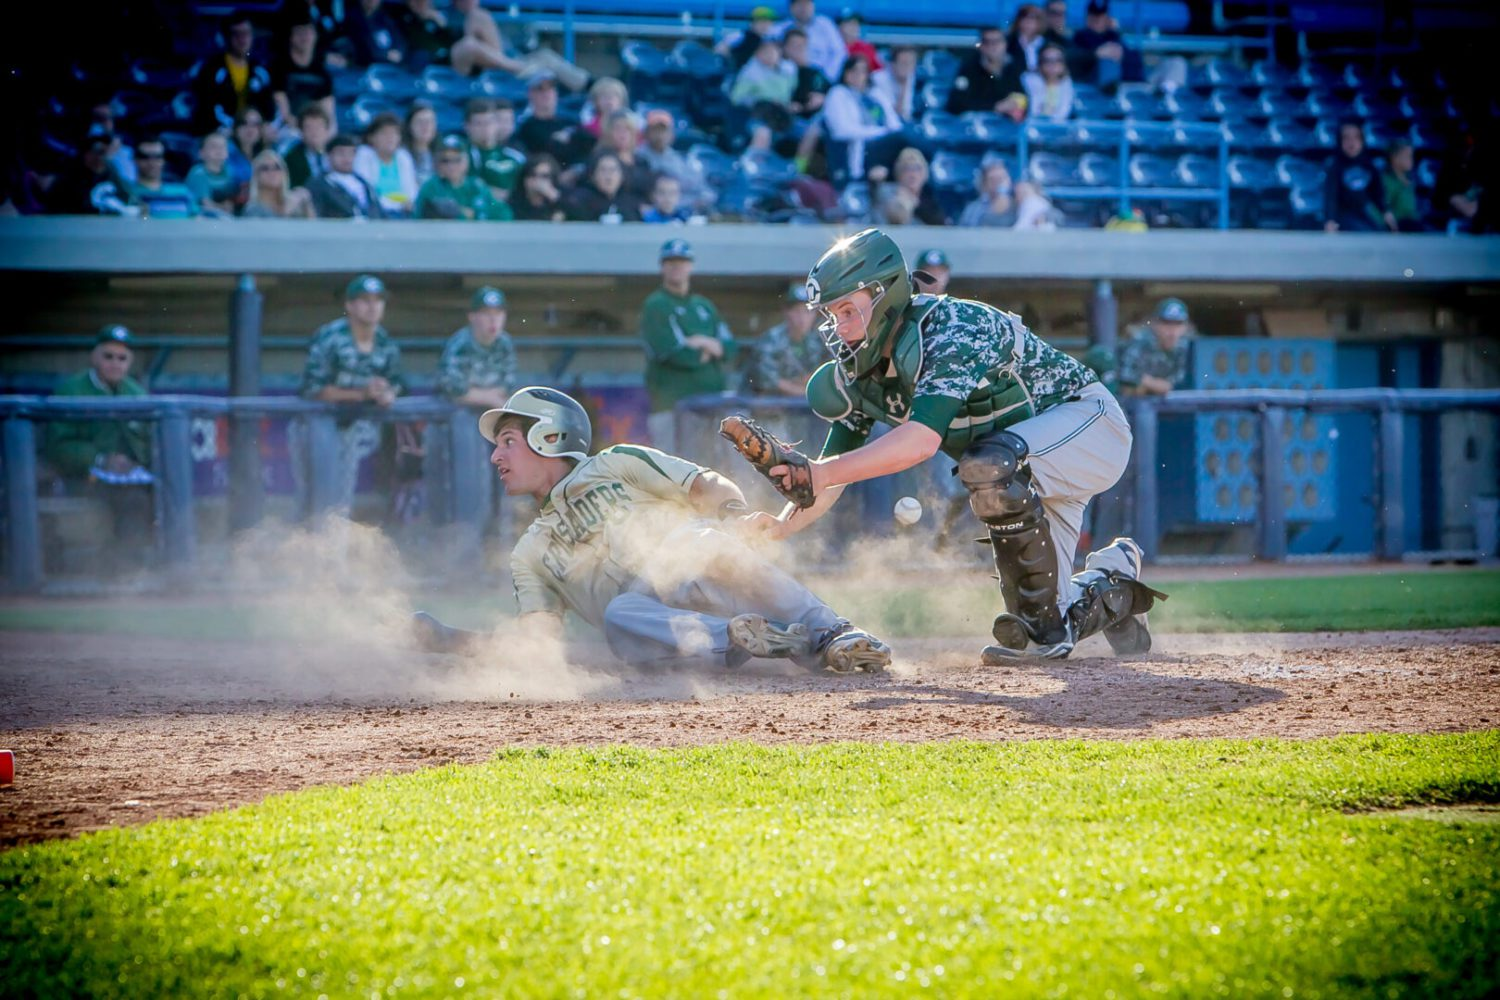 Photos from Muskegon Catholic's baseball game at 5th 3rd Ball Park against Grand Rapids West Catholic